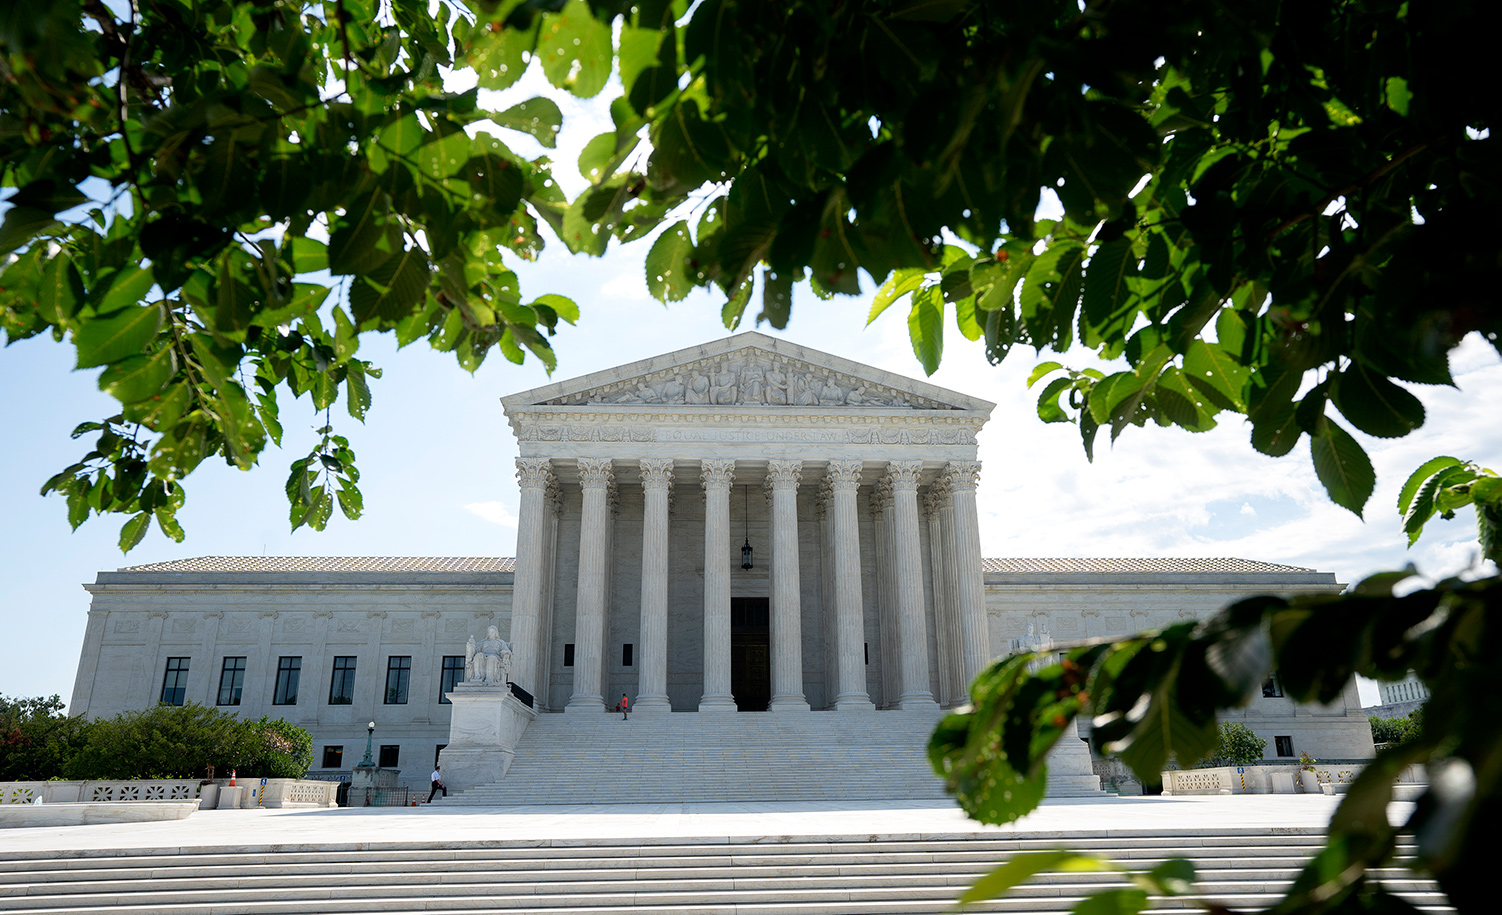 A general view of the U.S. Supreme Court on June 30, 2020 in Washington, DC. Stefani Reynolds/Getty Images.